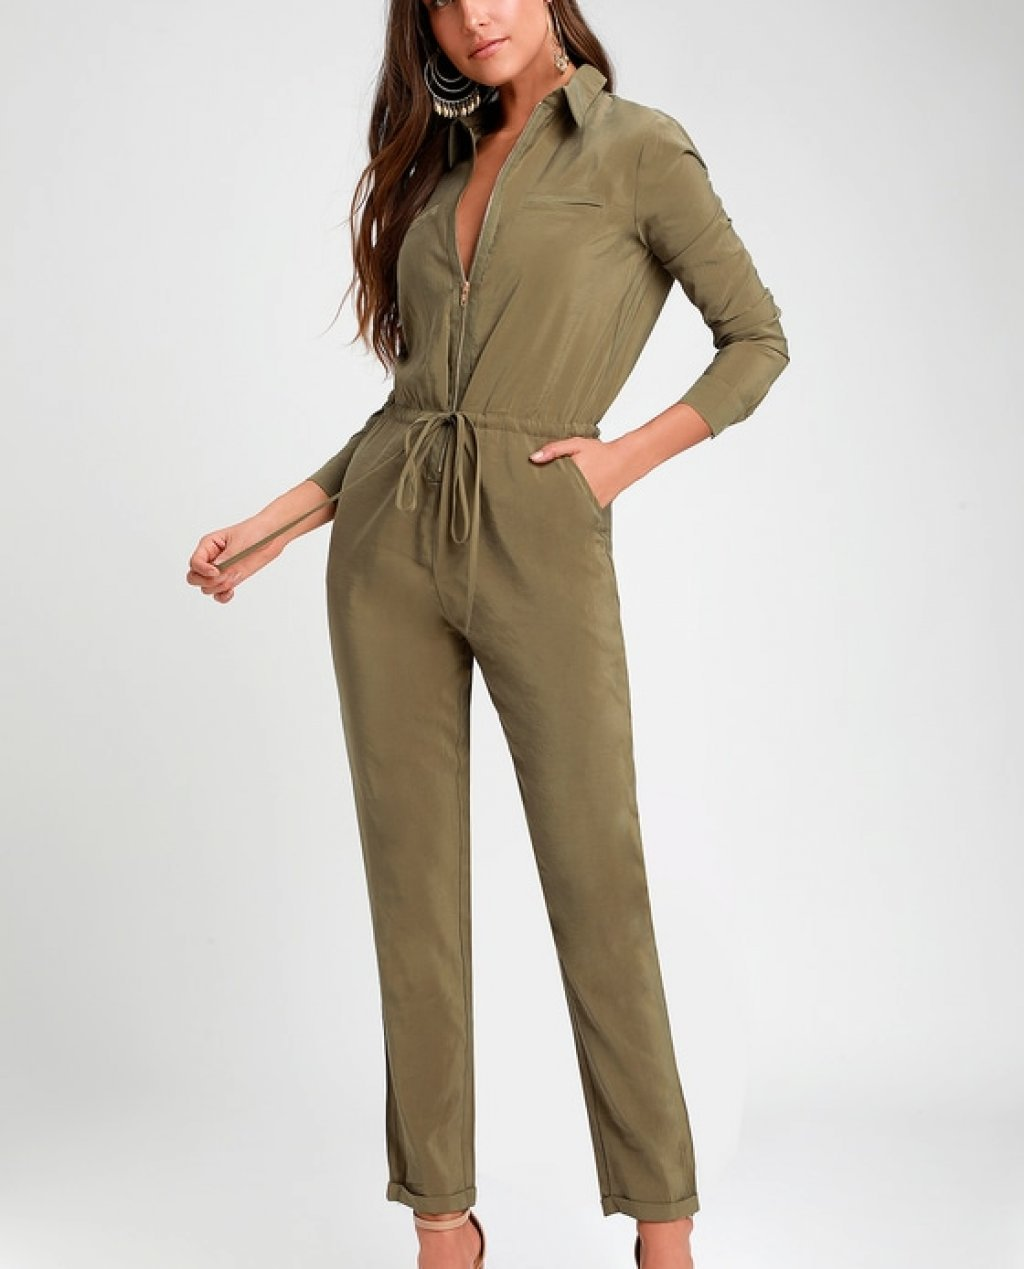 Clifton Washed Olive Green Long Sleeve Jumpsuit